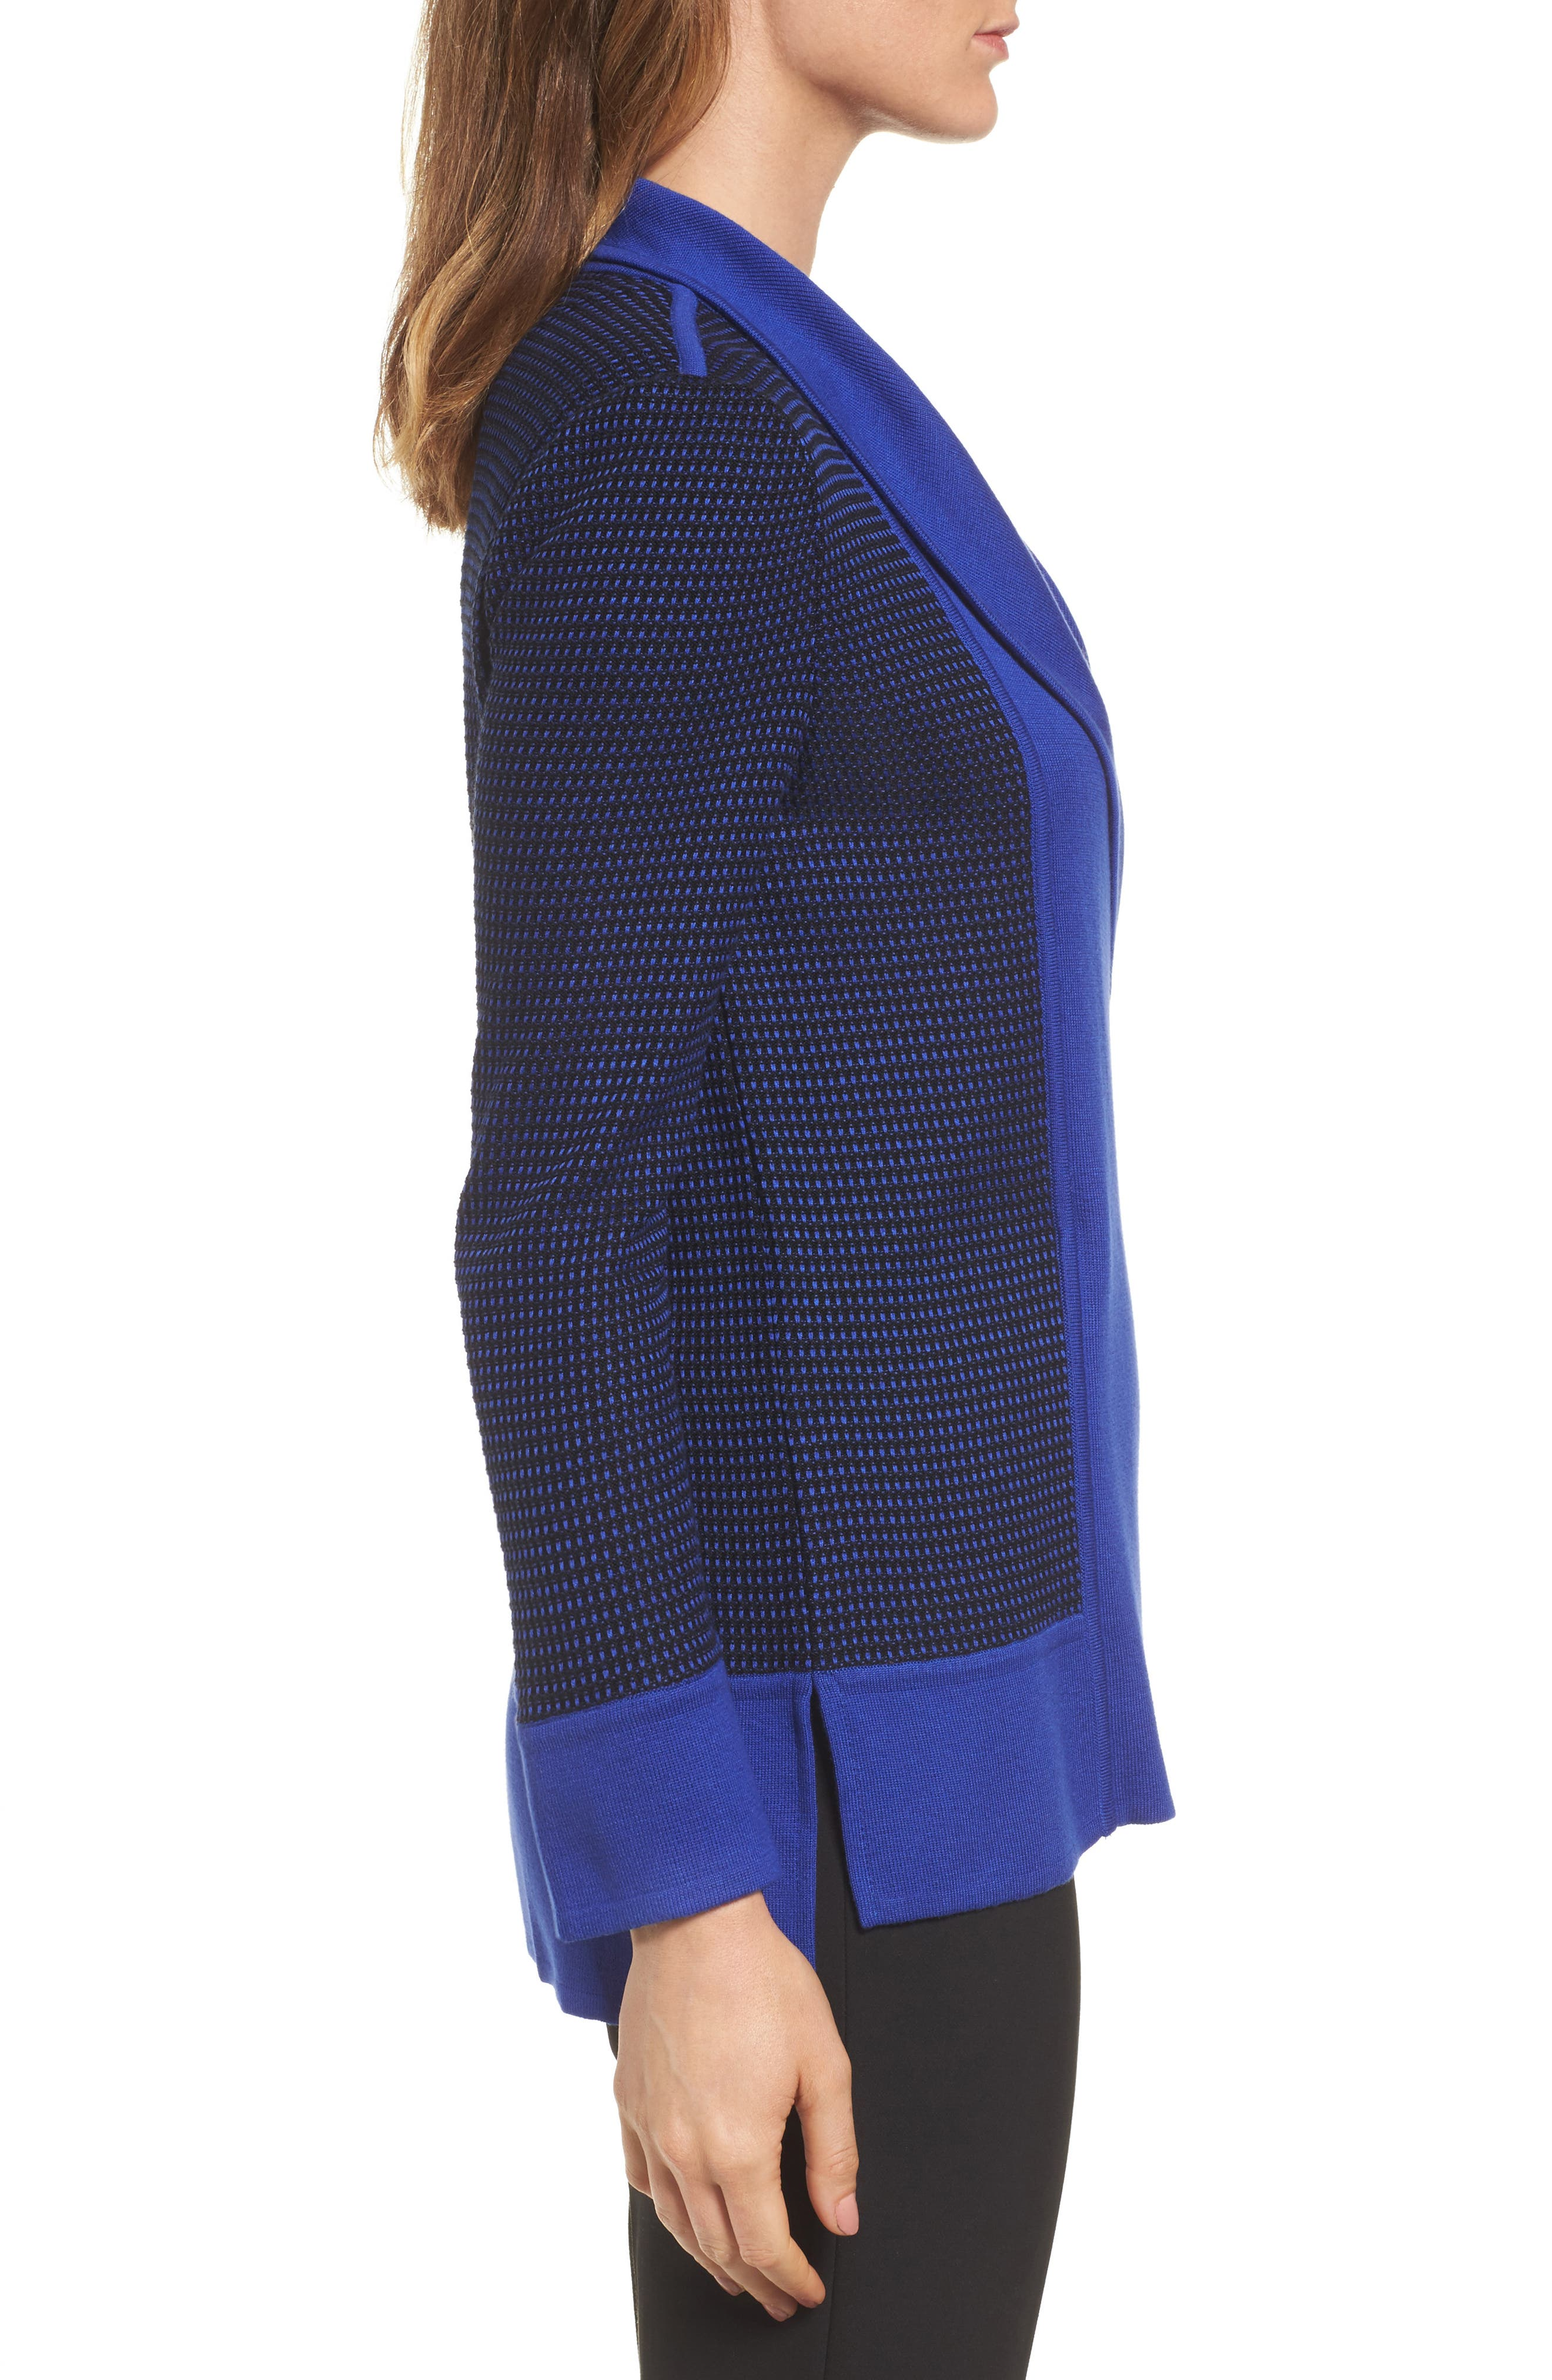 Asymetrical Zip Cardigan,                             Alternate thumbnail 3, color,                             Blue Flame/ Black